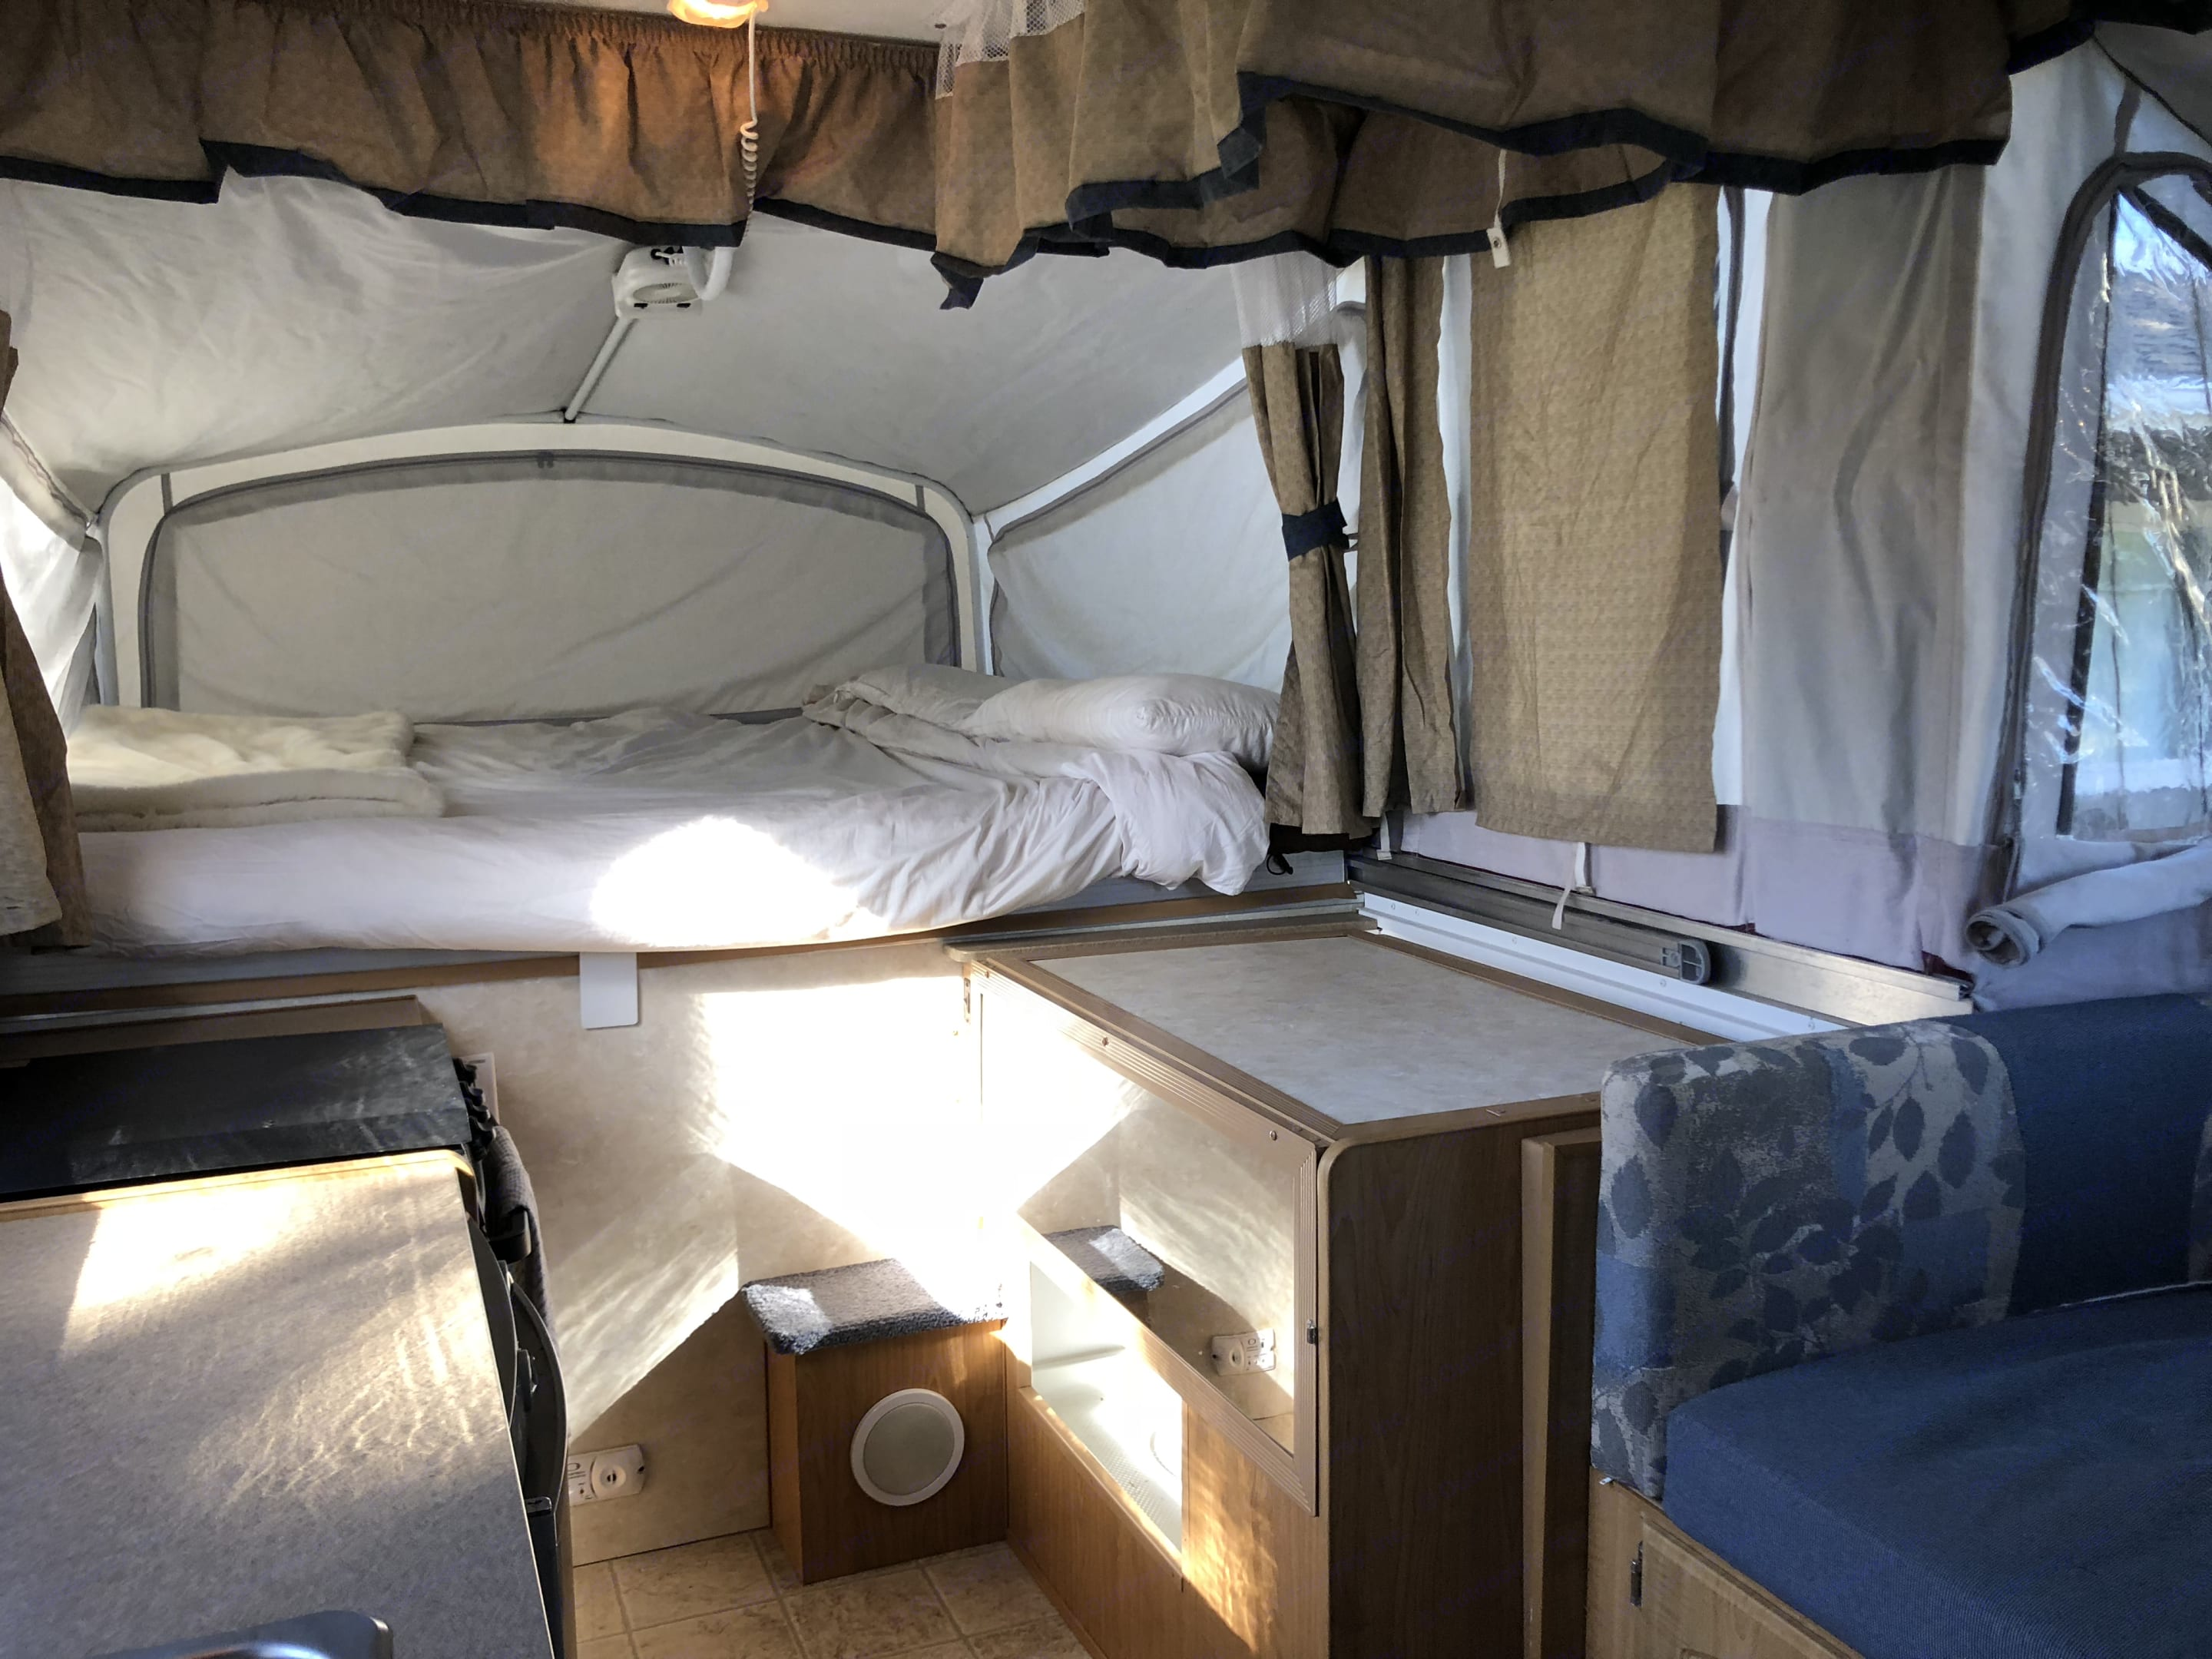 this picture is with the bathroom walls folded down to use as extra counter space. Fleetwood Highlander Niagara 2007